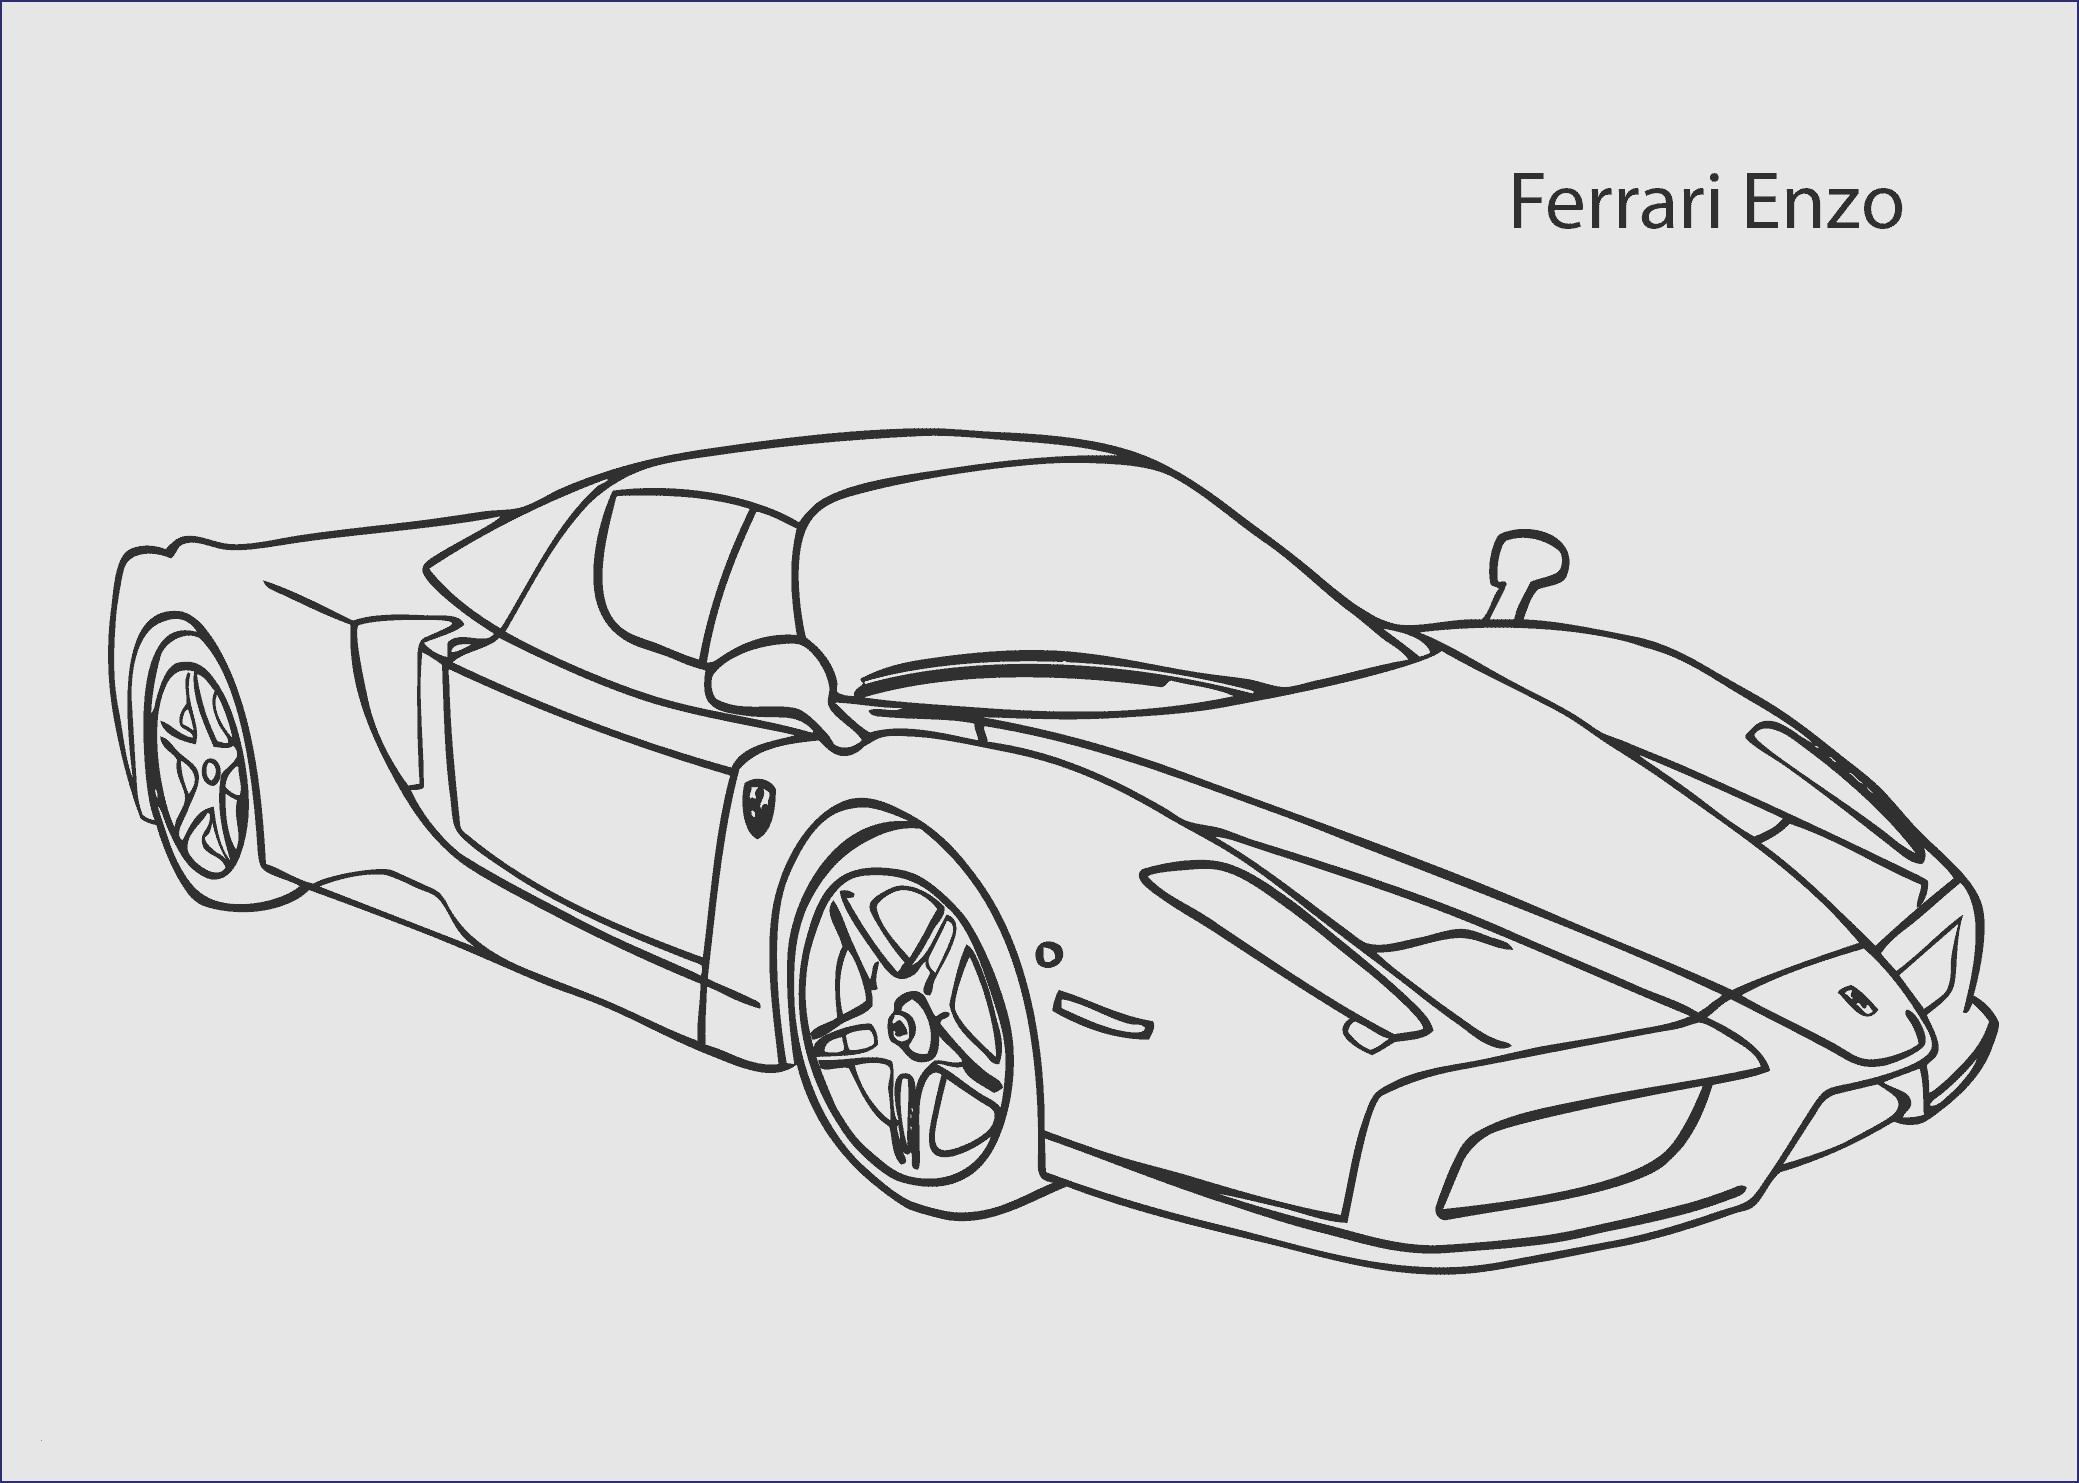 coloring pages for cars Download-Coloring Pics Detail 7-j